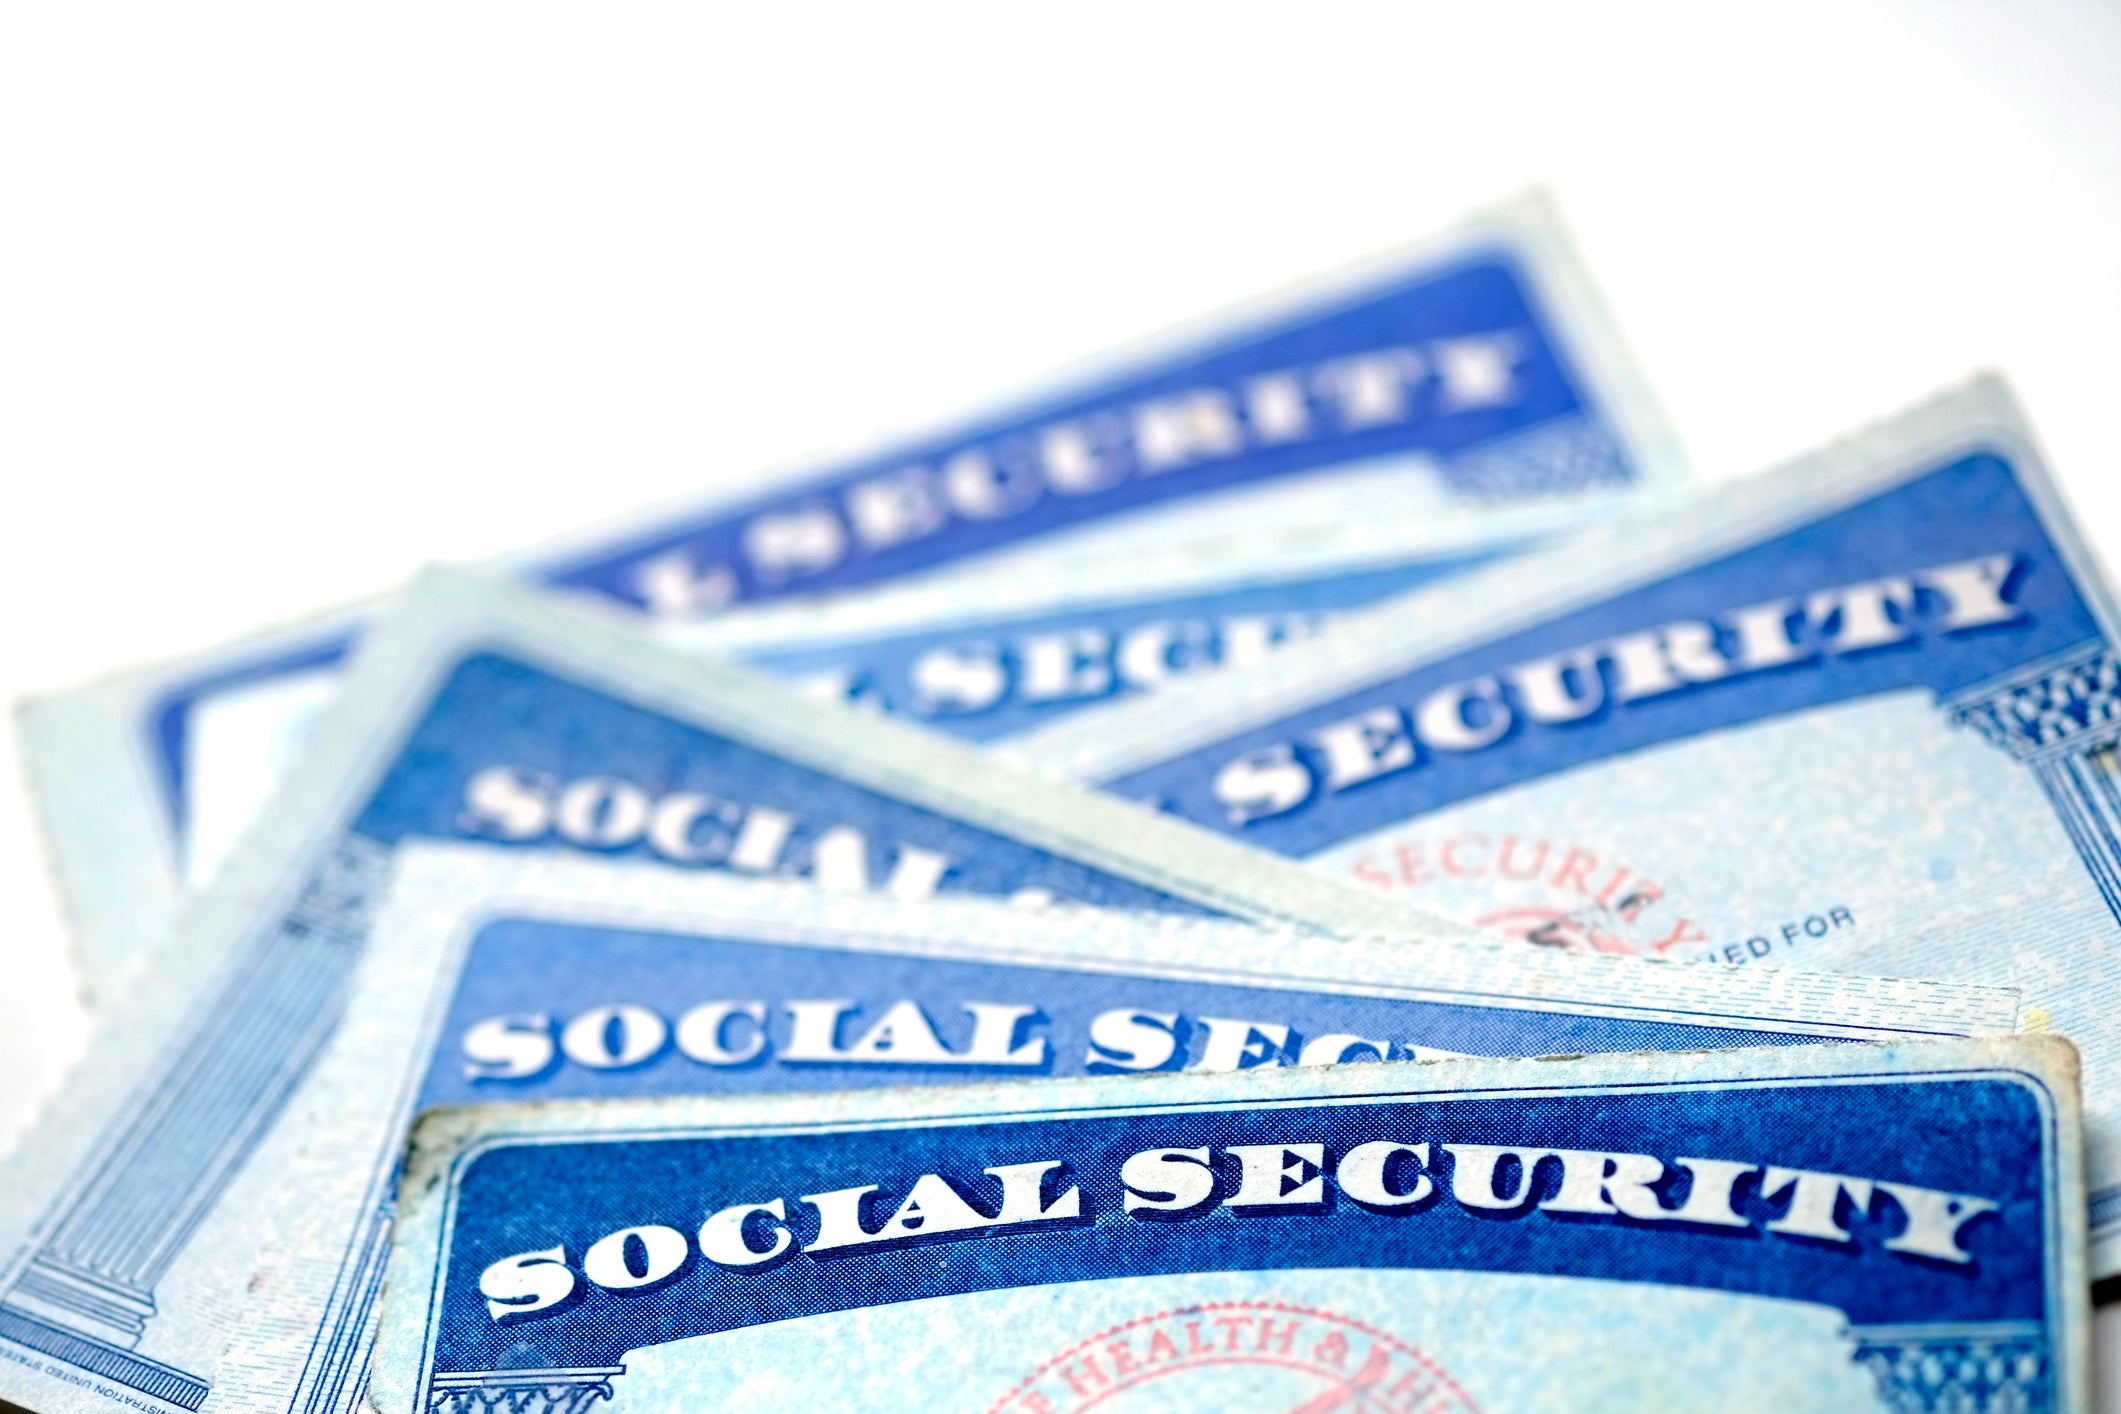 3 Social Security Moves You Can Make While COVID-19 Has You Stuck ...